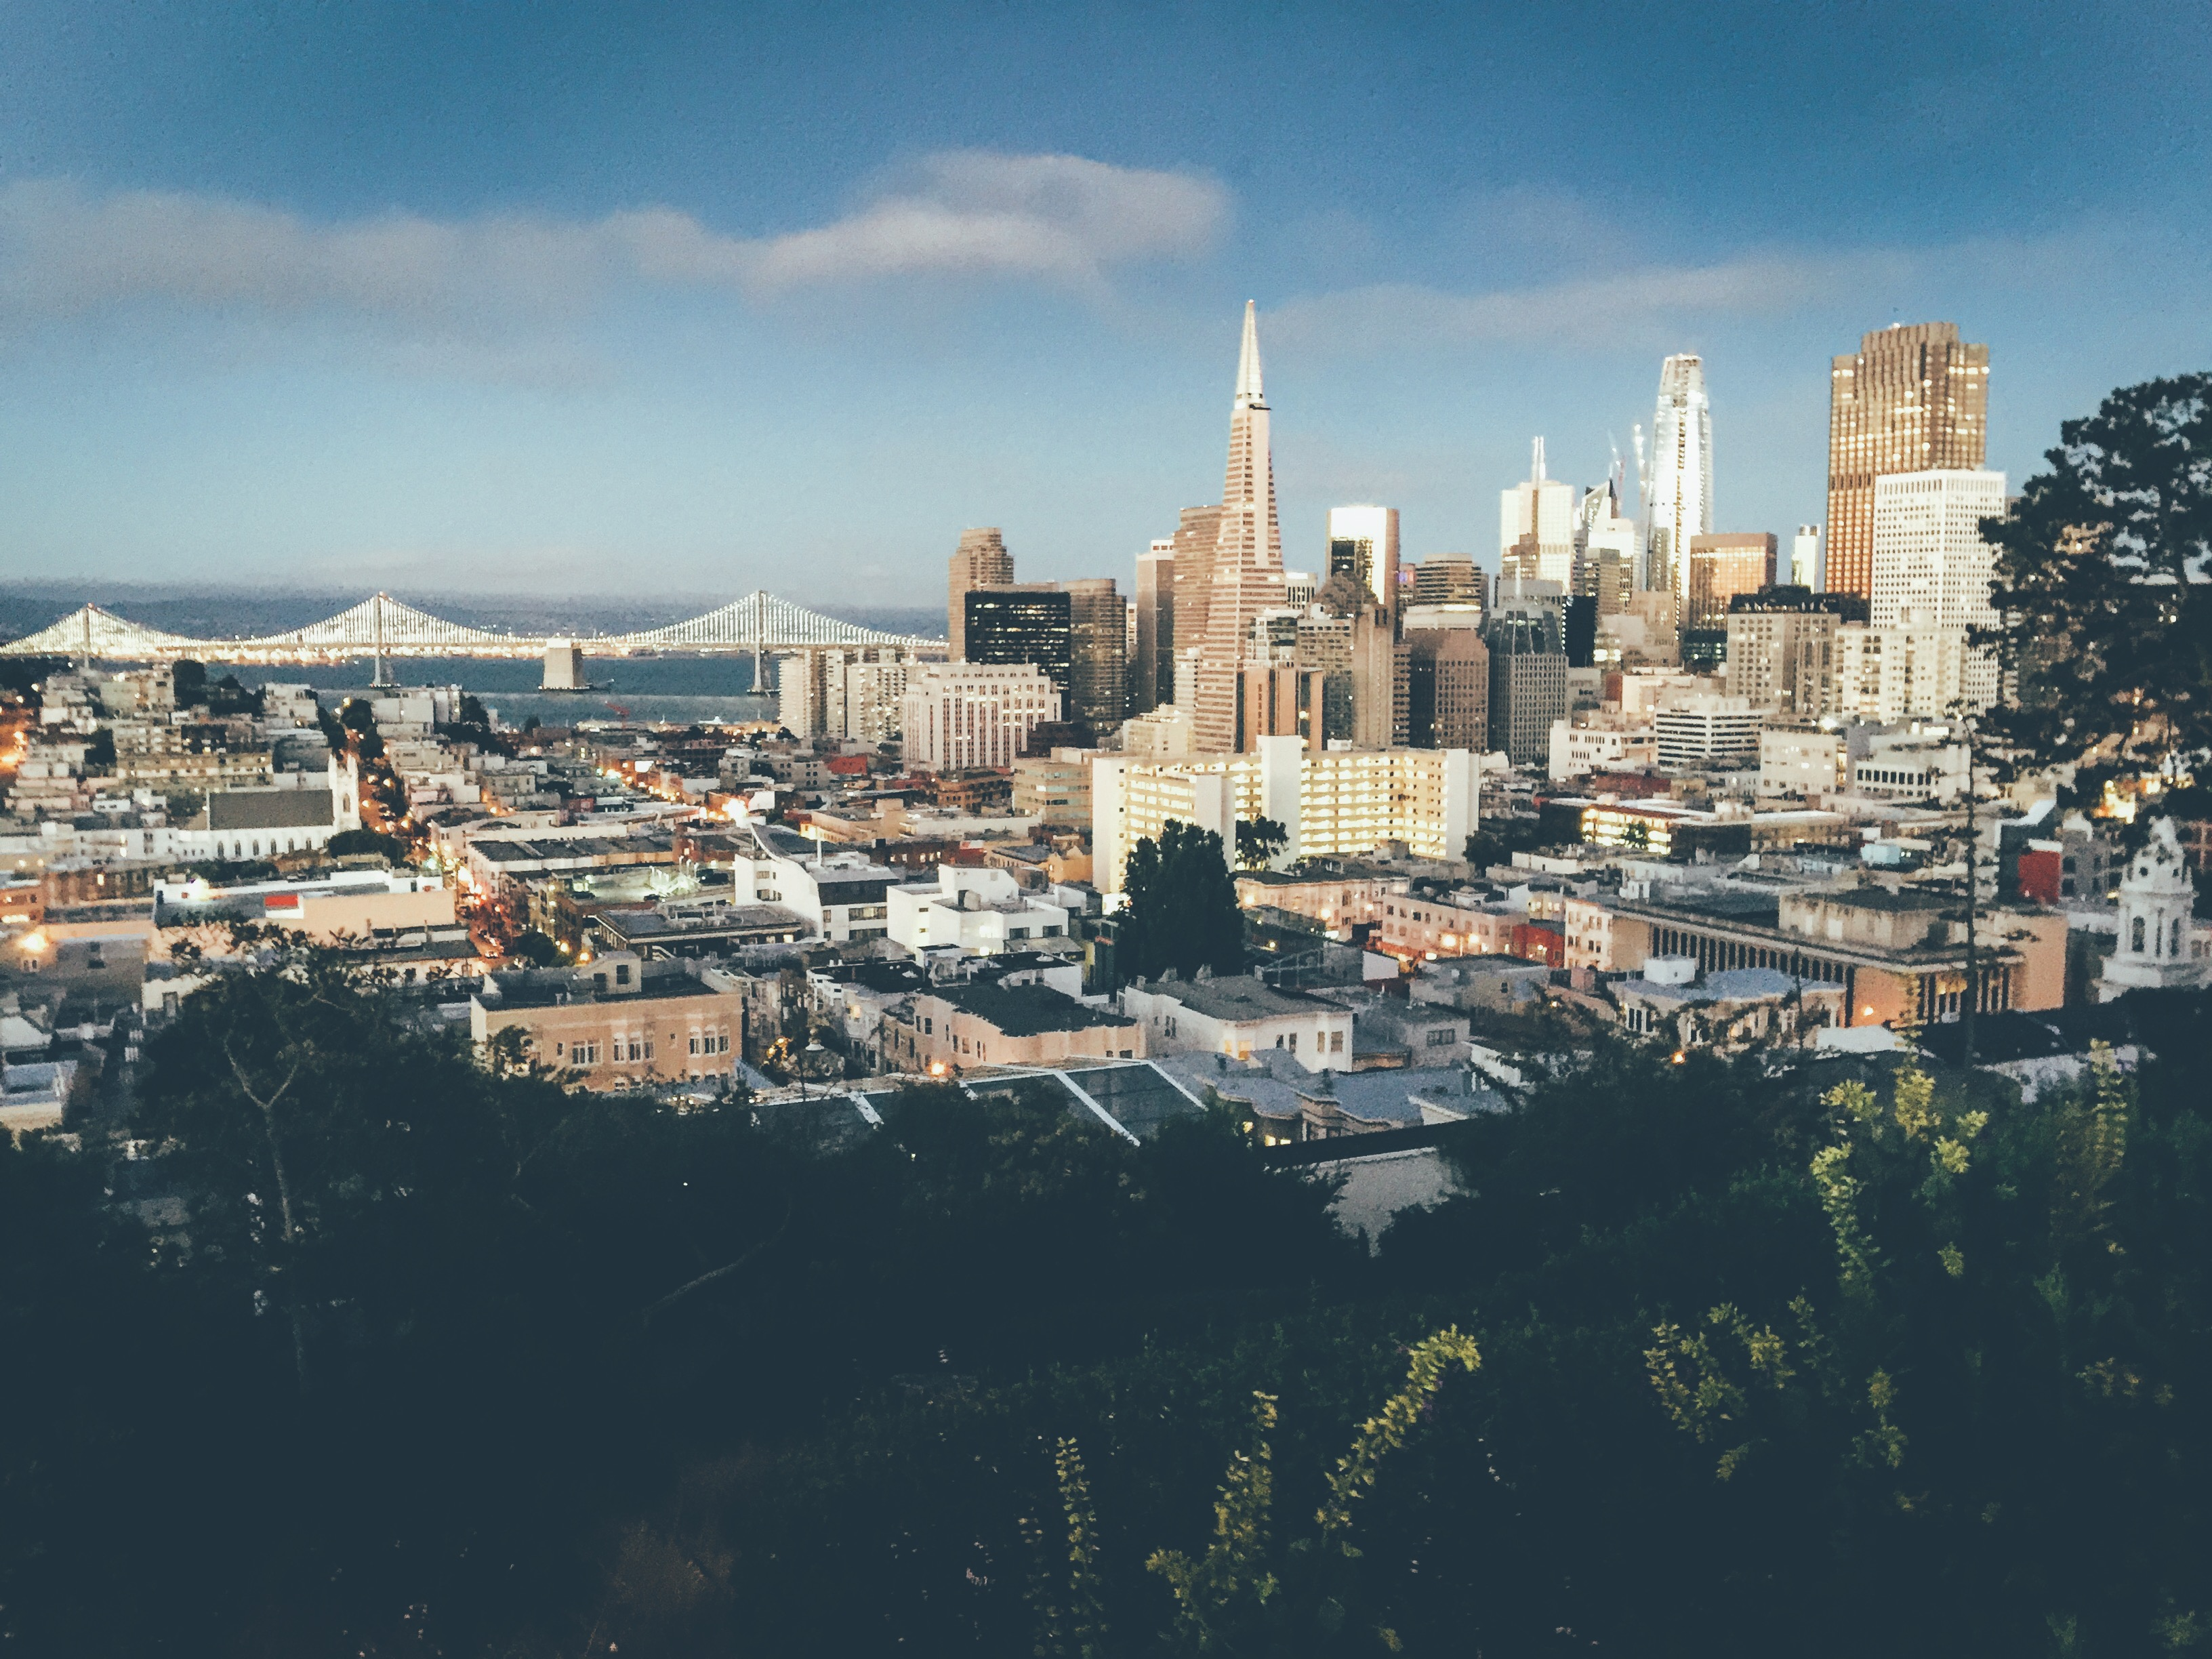 San Francisco city and skyline view of Transamerica building and salesforce biulding